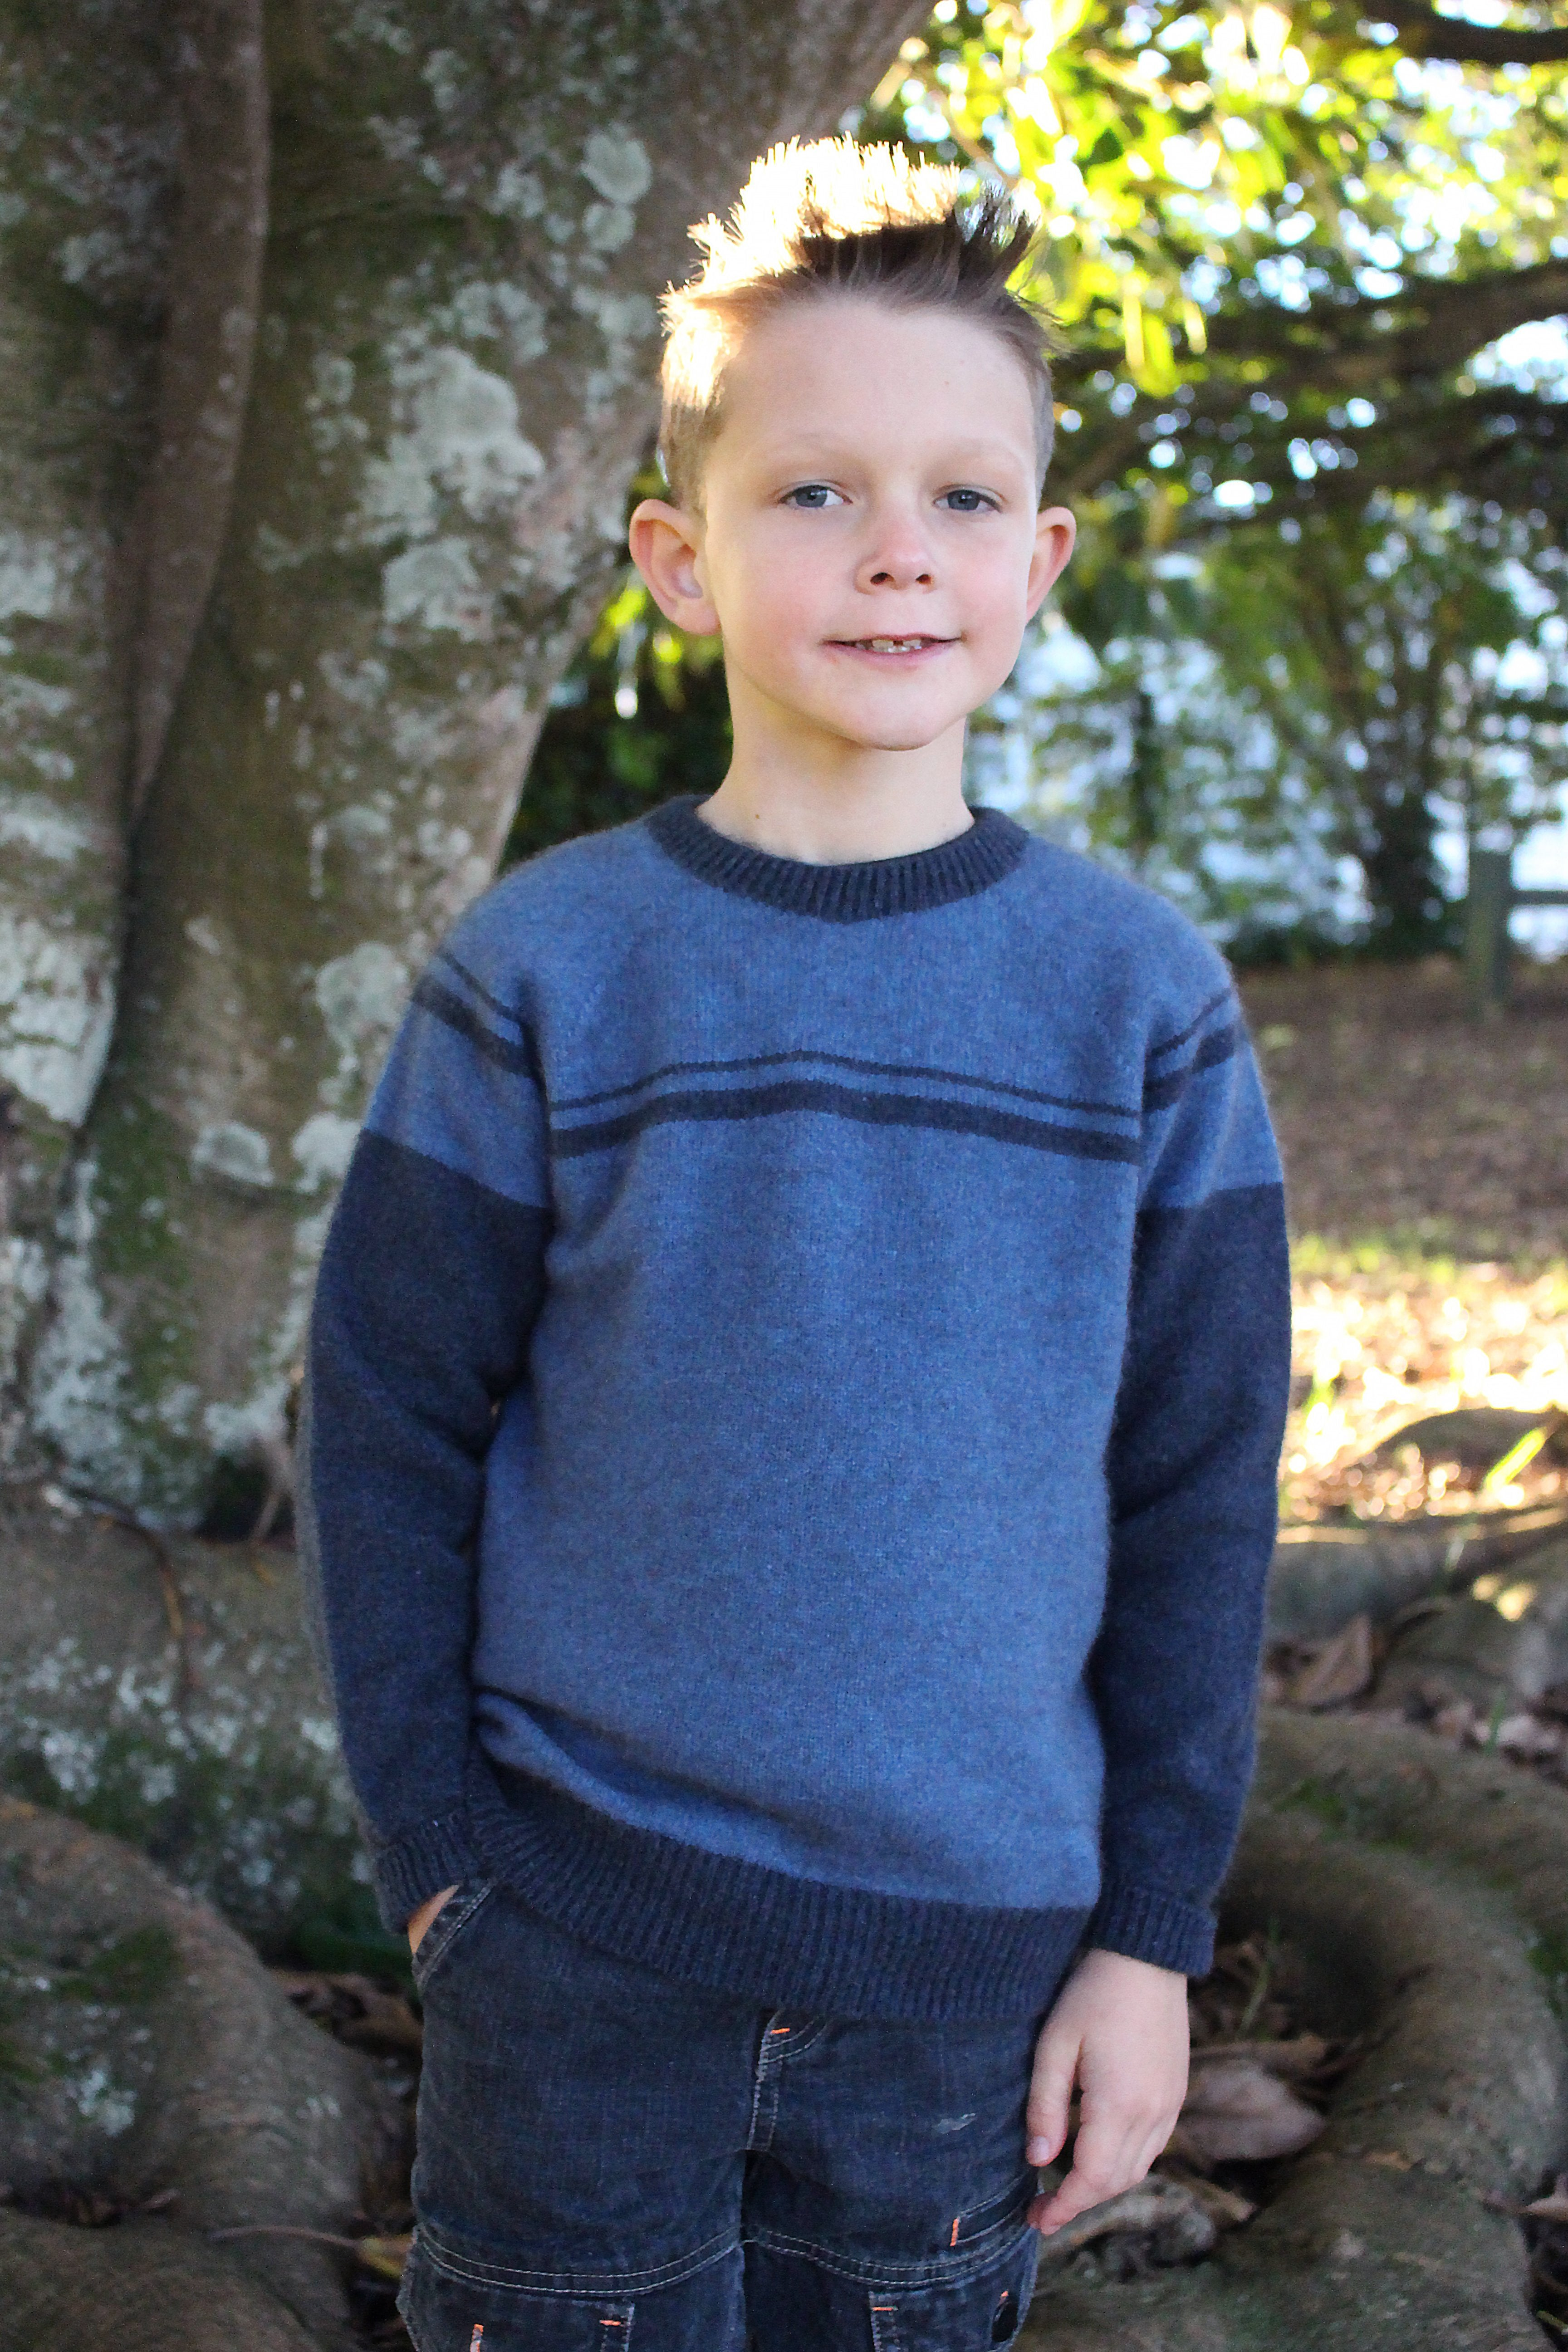 BOY'S STRIPED JUMPER - Woolshed Gallery